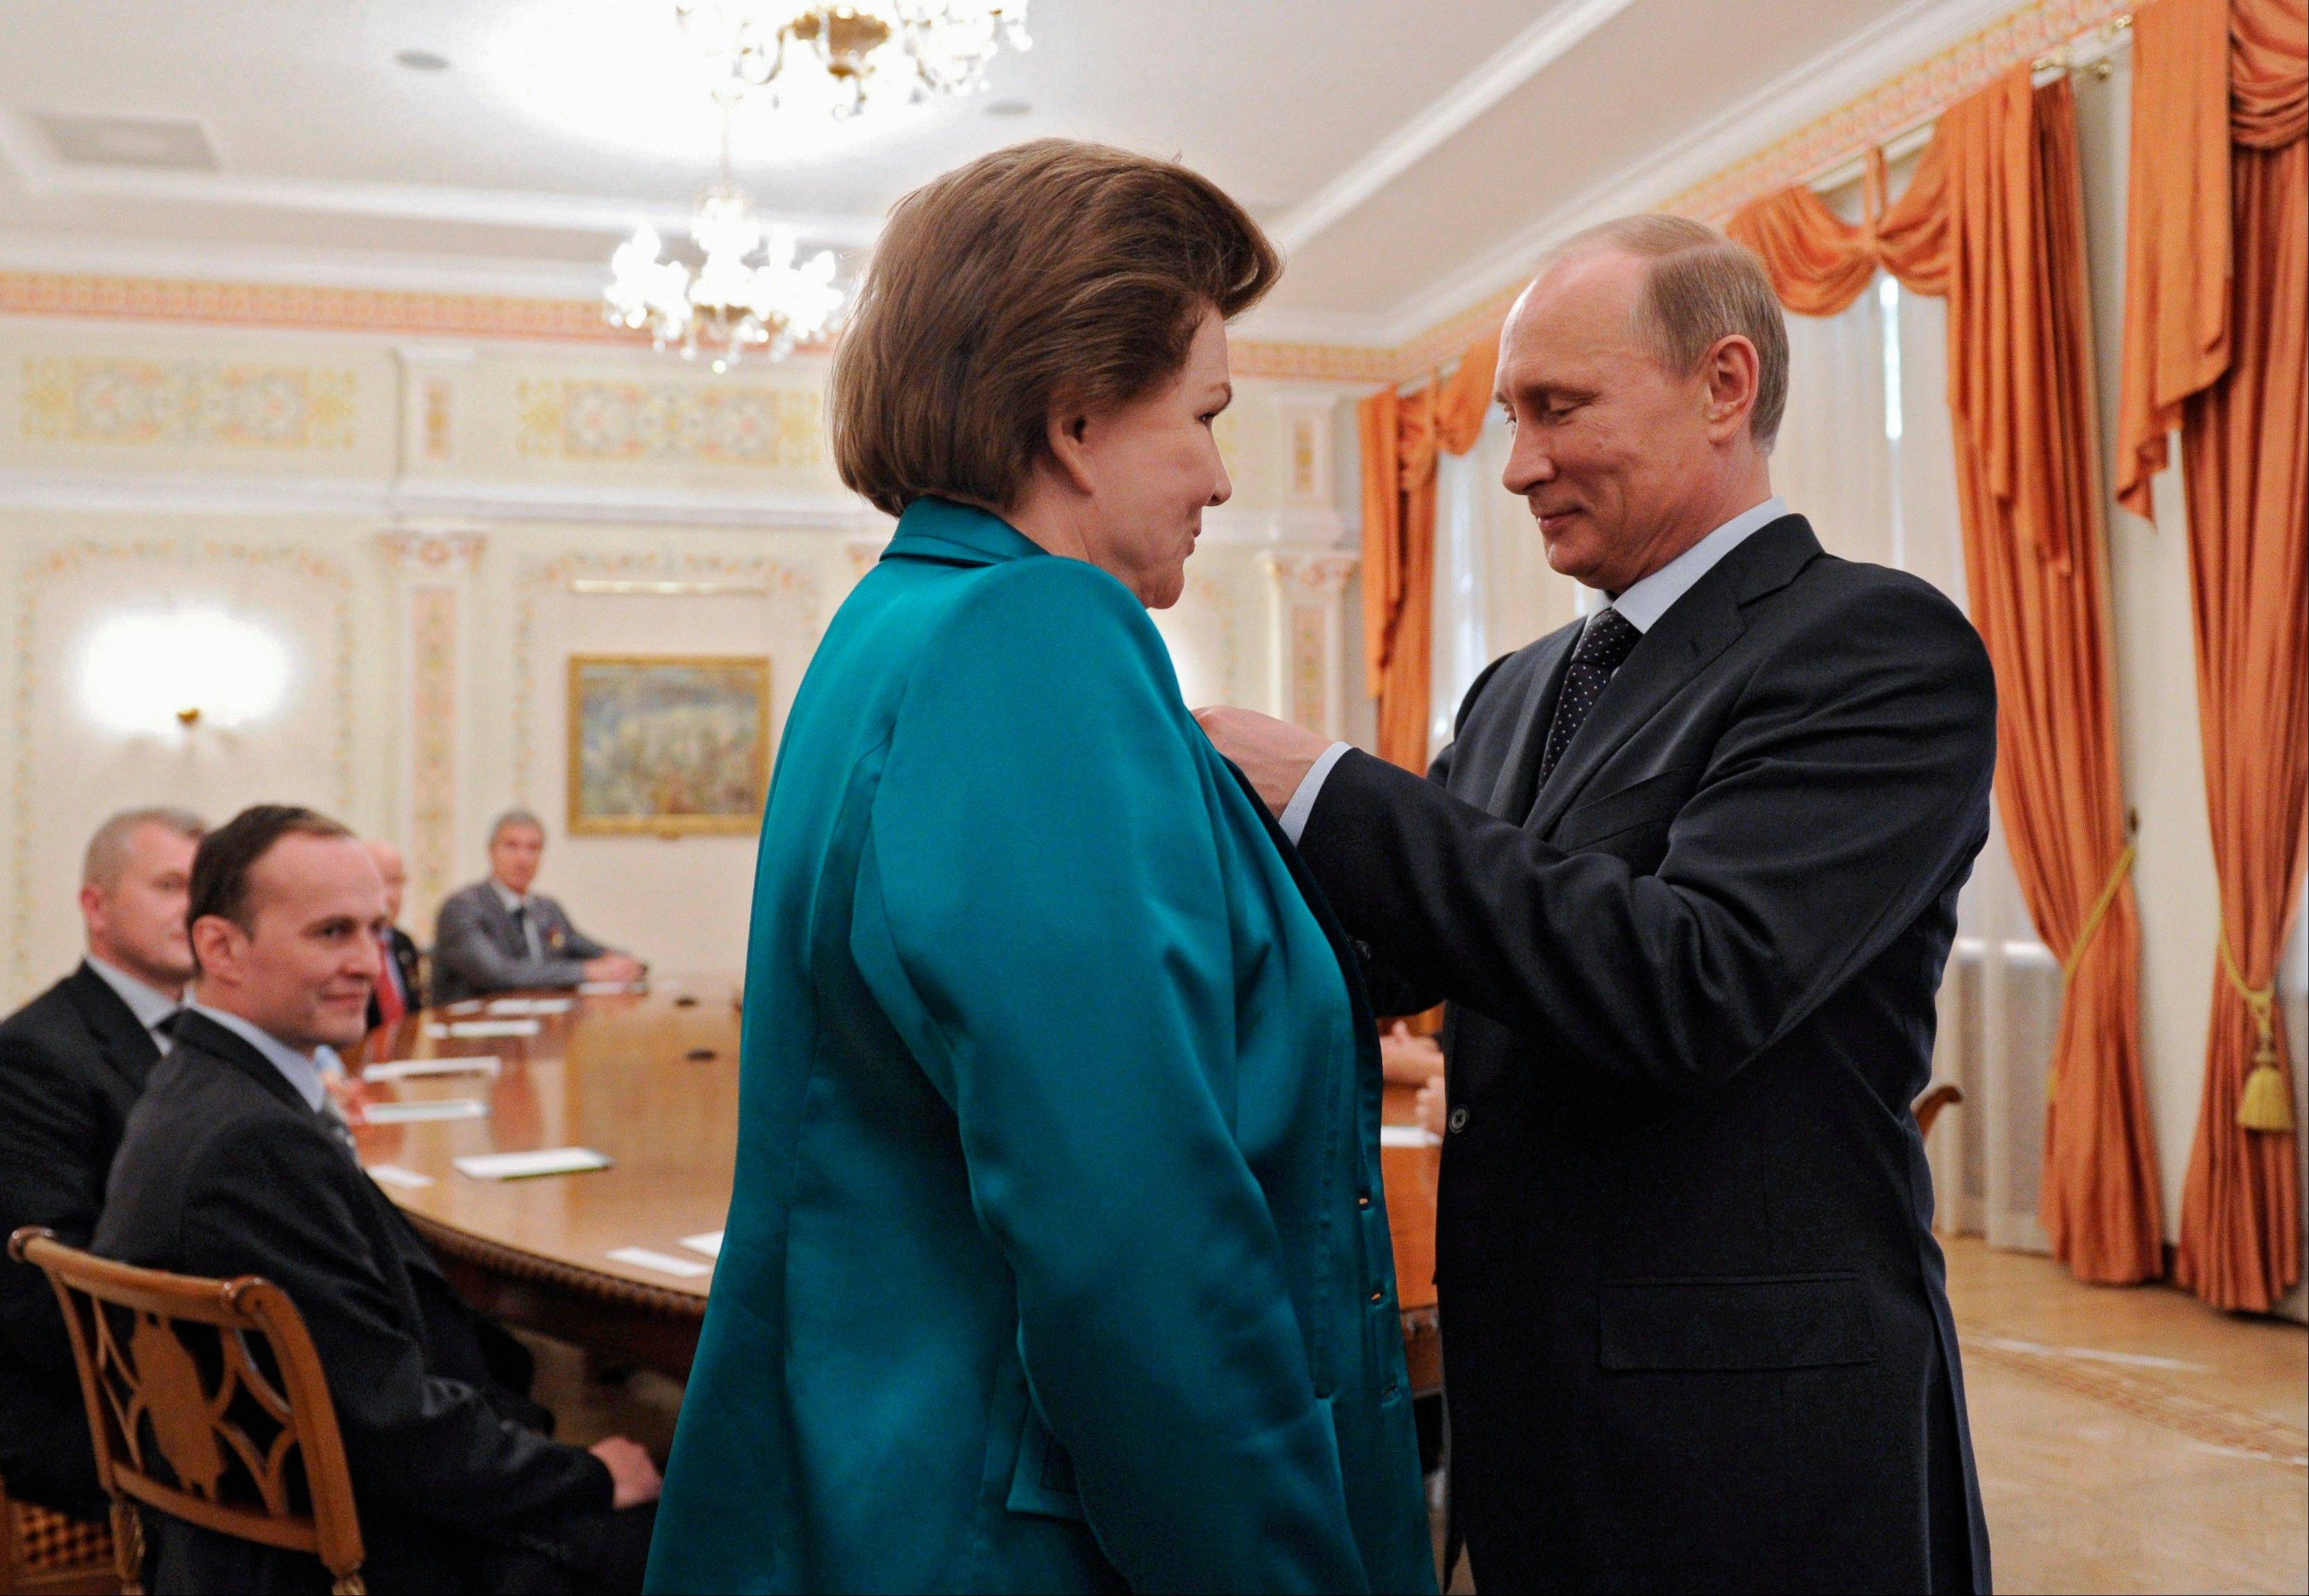 Russian President Vladimir Putin awards cosmonaut Valentina Tereshkova, the first woman in space, with the Order of Alexander Nevsky Friday in the Novo-Ogaryovo residence outside Moscow.